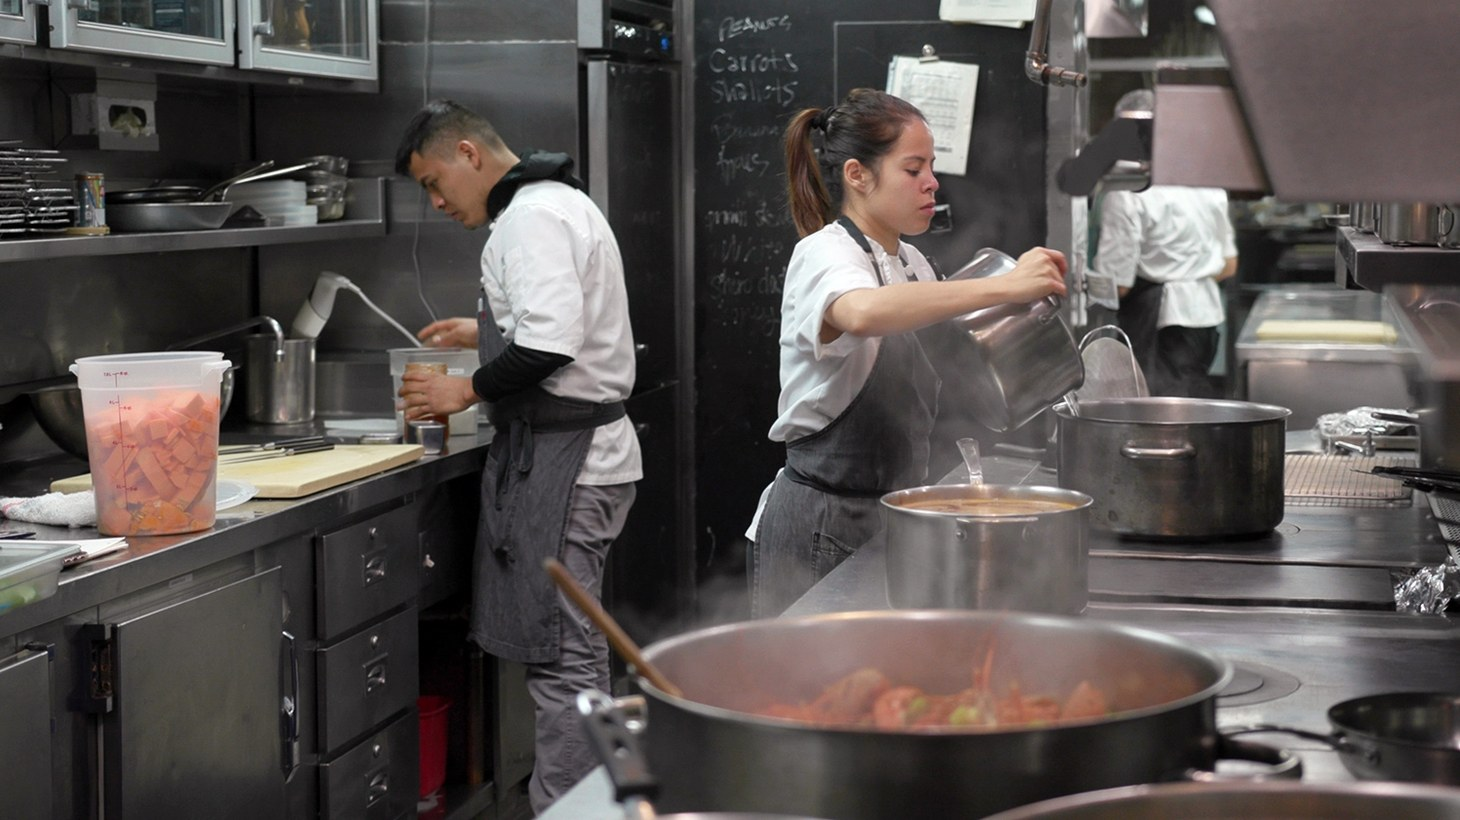 Cooks in your typical restaurant kitchen.